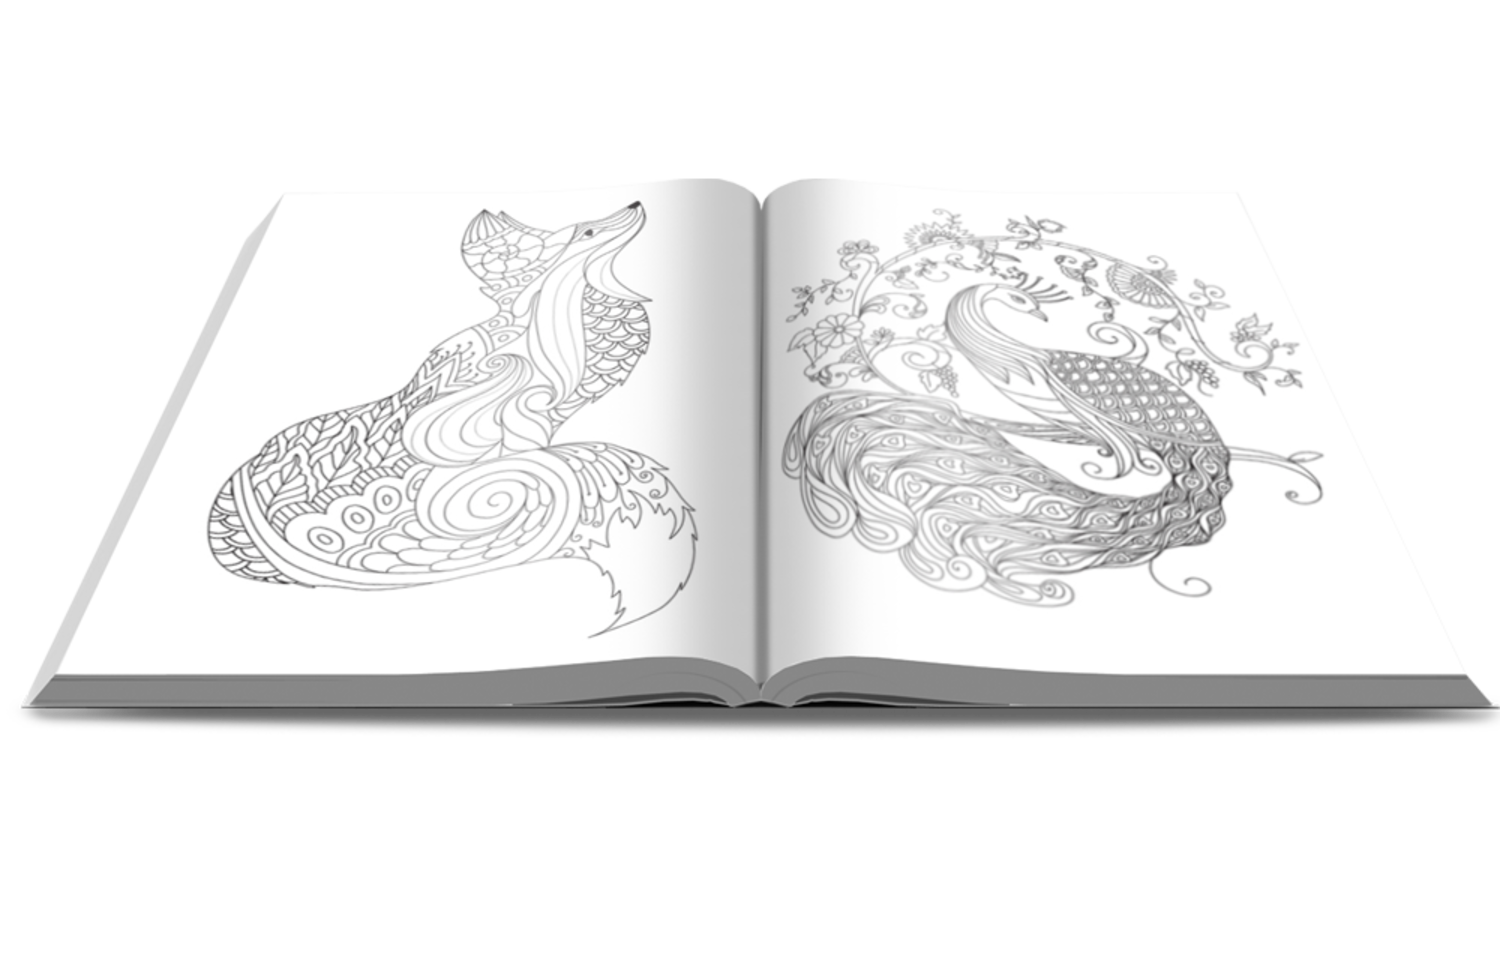 Trial Coloring Book Club The Coloring Book Club Coloring Books Coloring Pages Butterfly Coloring Page